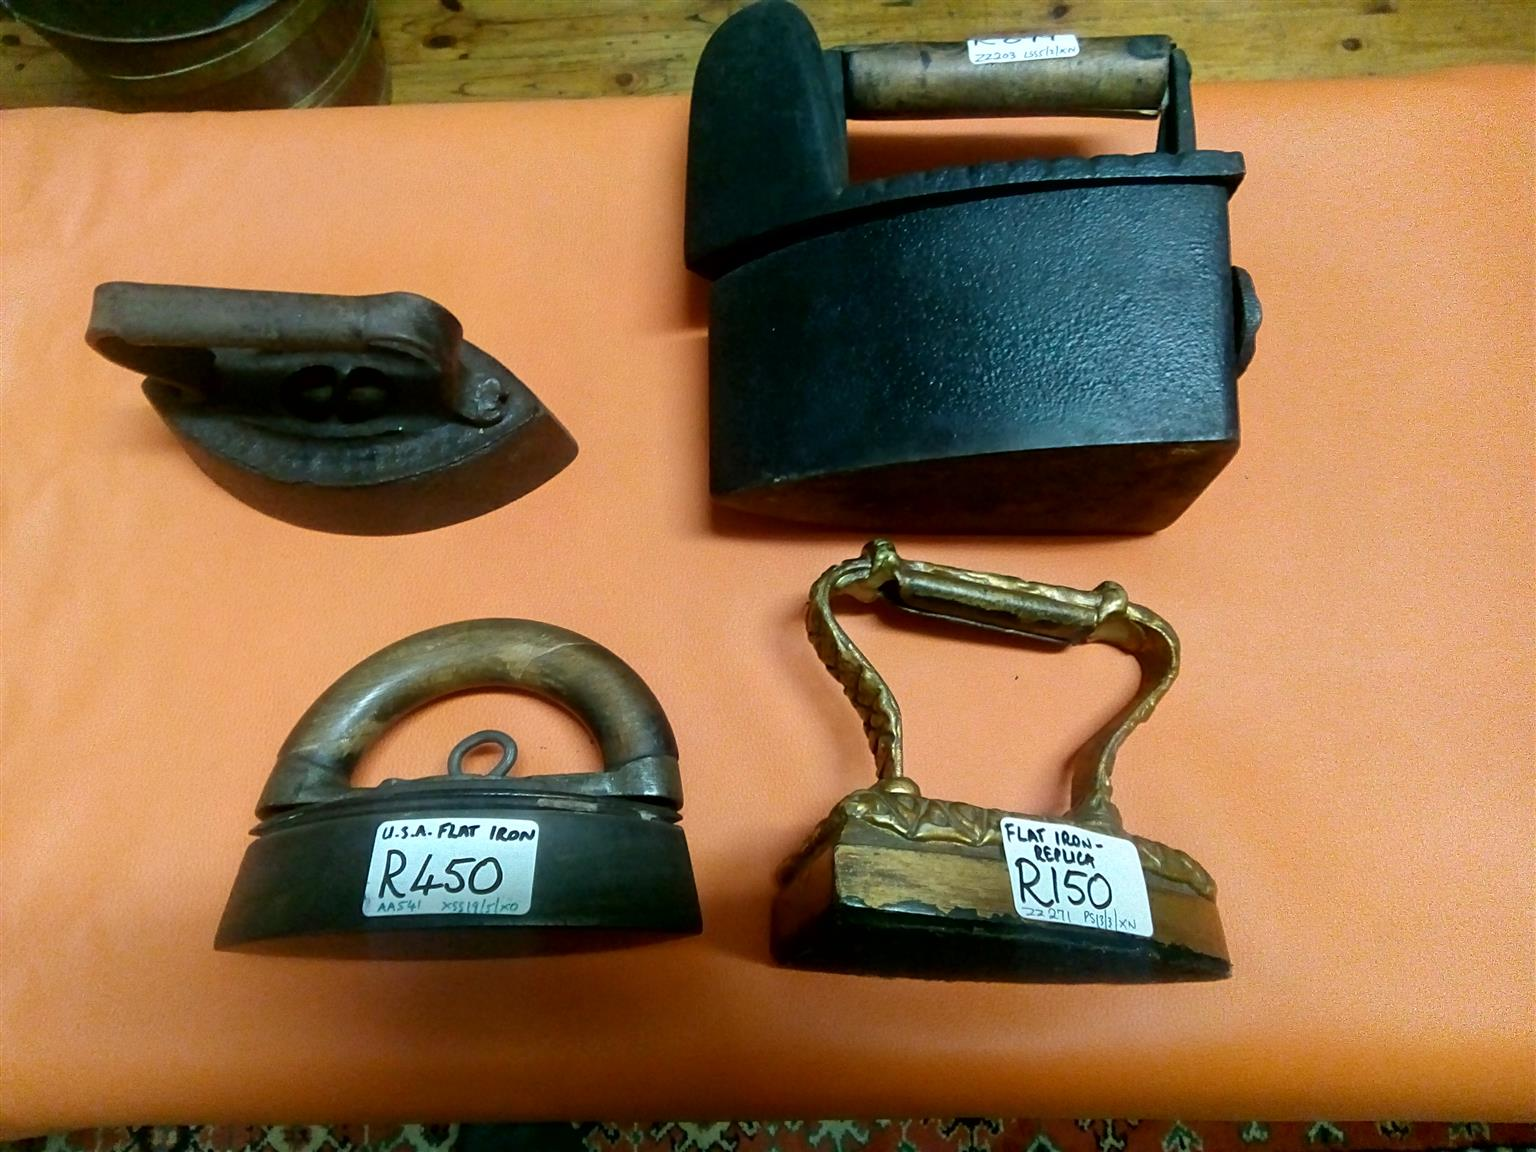 4 very rare and antique irons in different styles